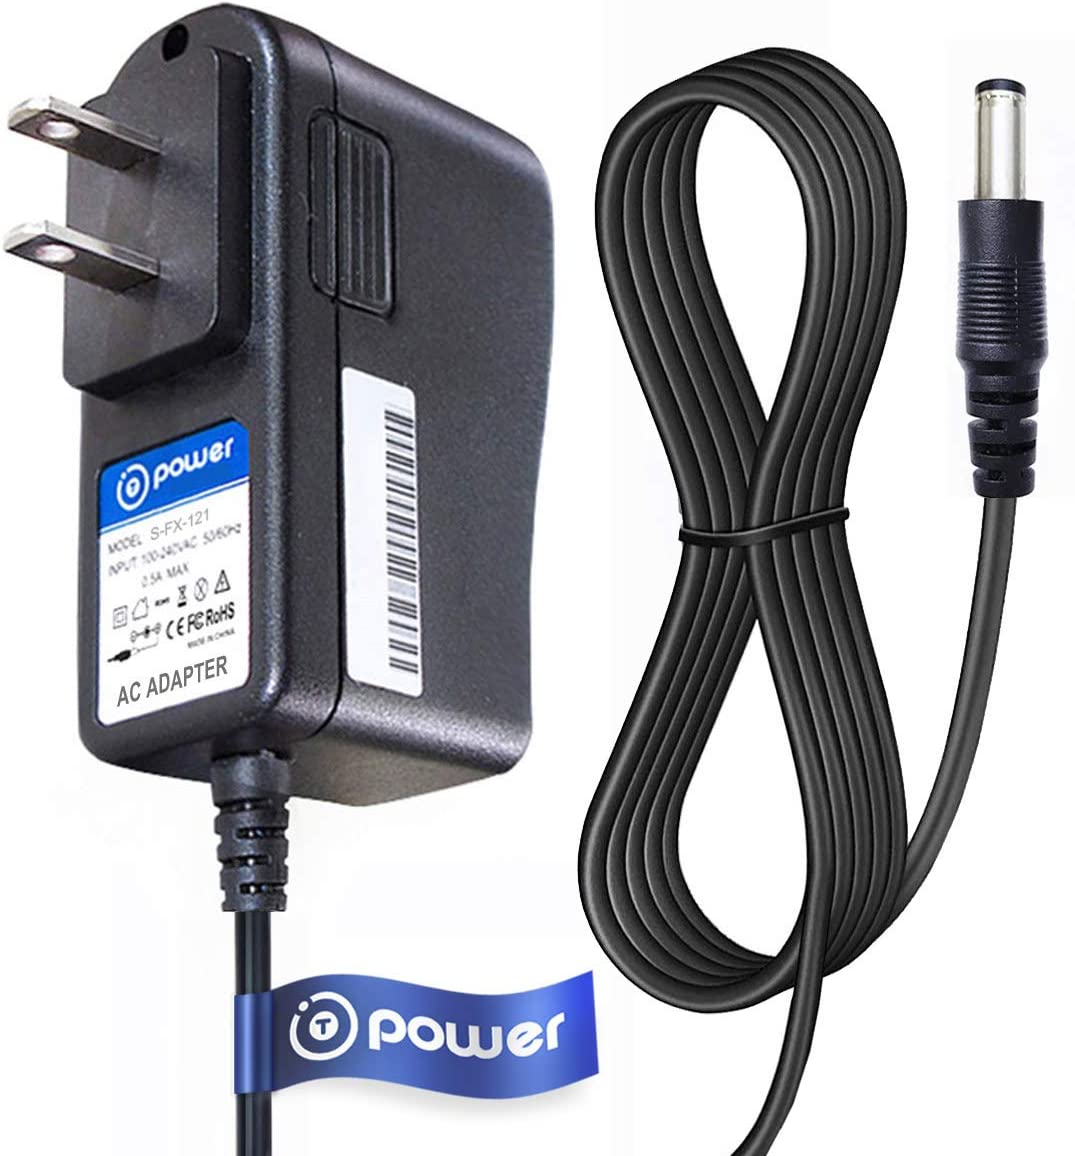 T POWER 12v Ac Dc Adapter Charger Compatible with RCA , Pyle , DBPOWER , Sylvania, Synagy, Apeman, Craig, COOAU, Dynex, Impecca, Magnavox , UEME Portable Dvd Player Power Supply